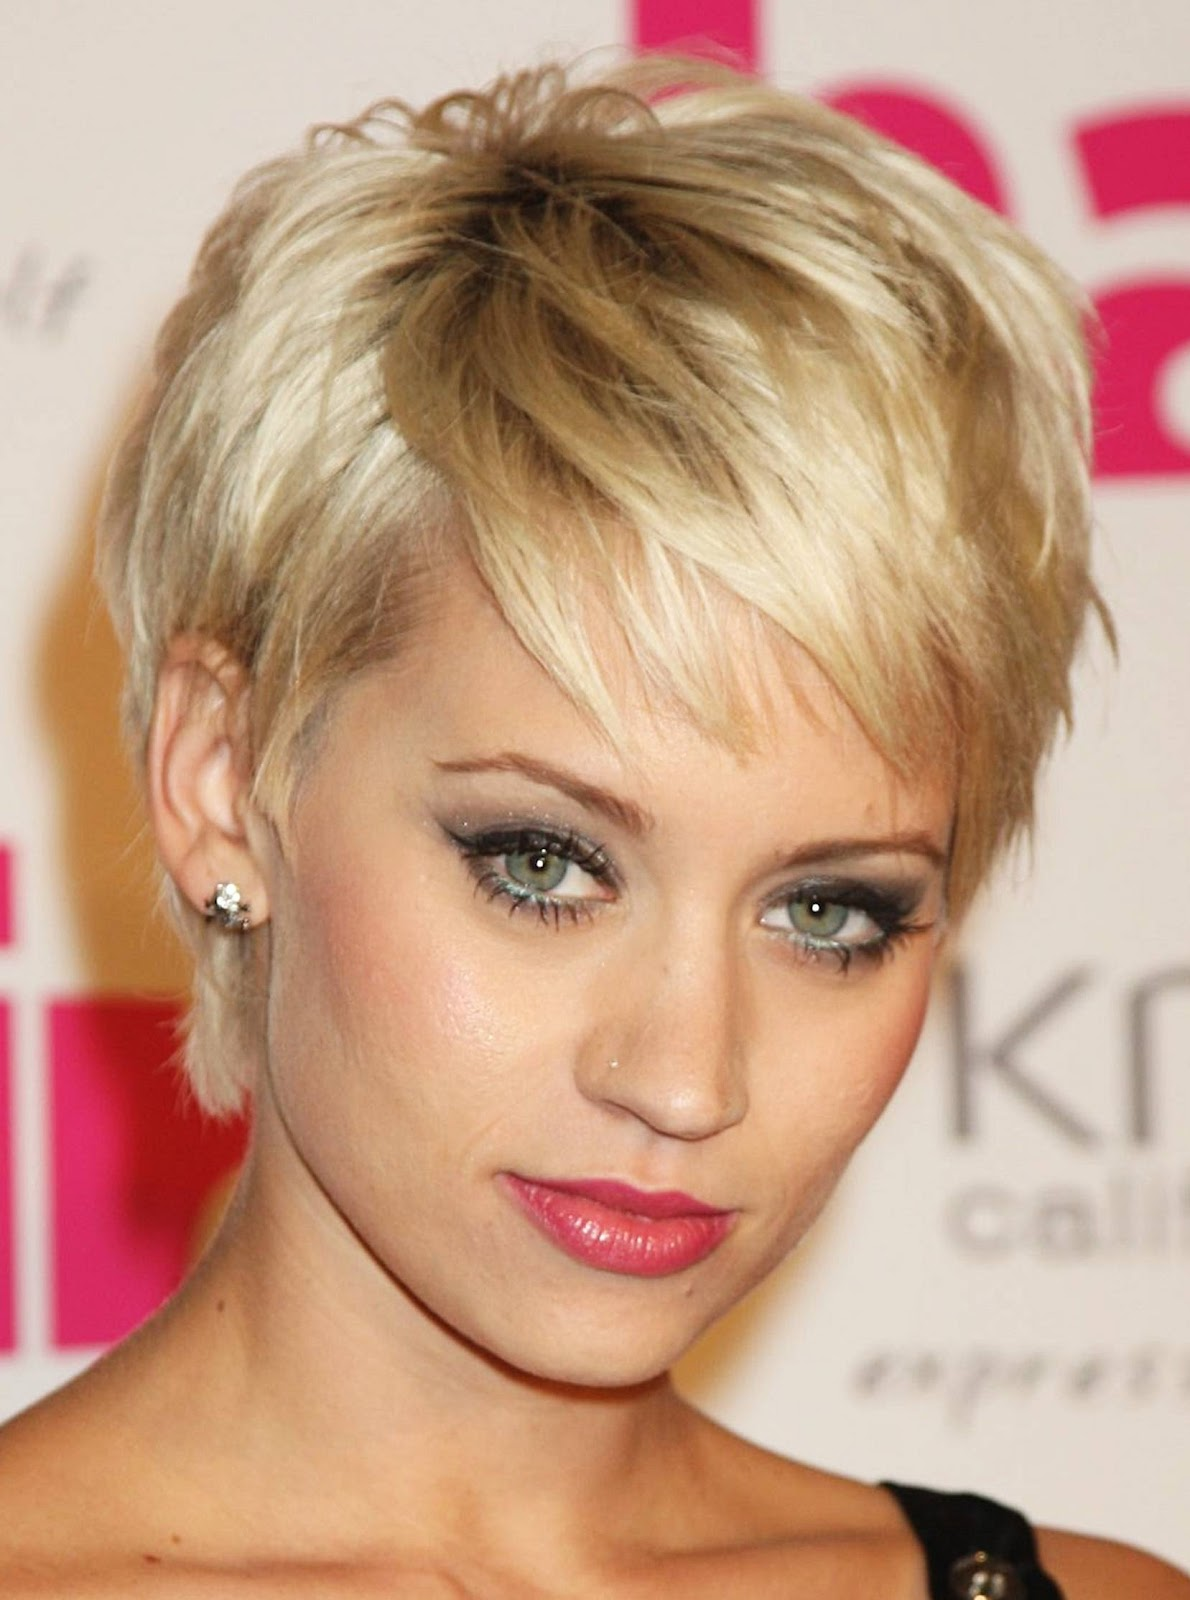 Awesome Fashion 2012 Awesome Summer Hairstyles 2012 For Women